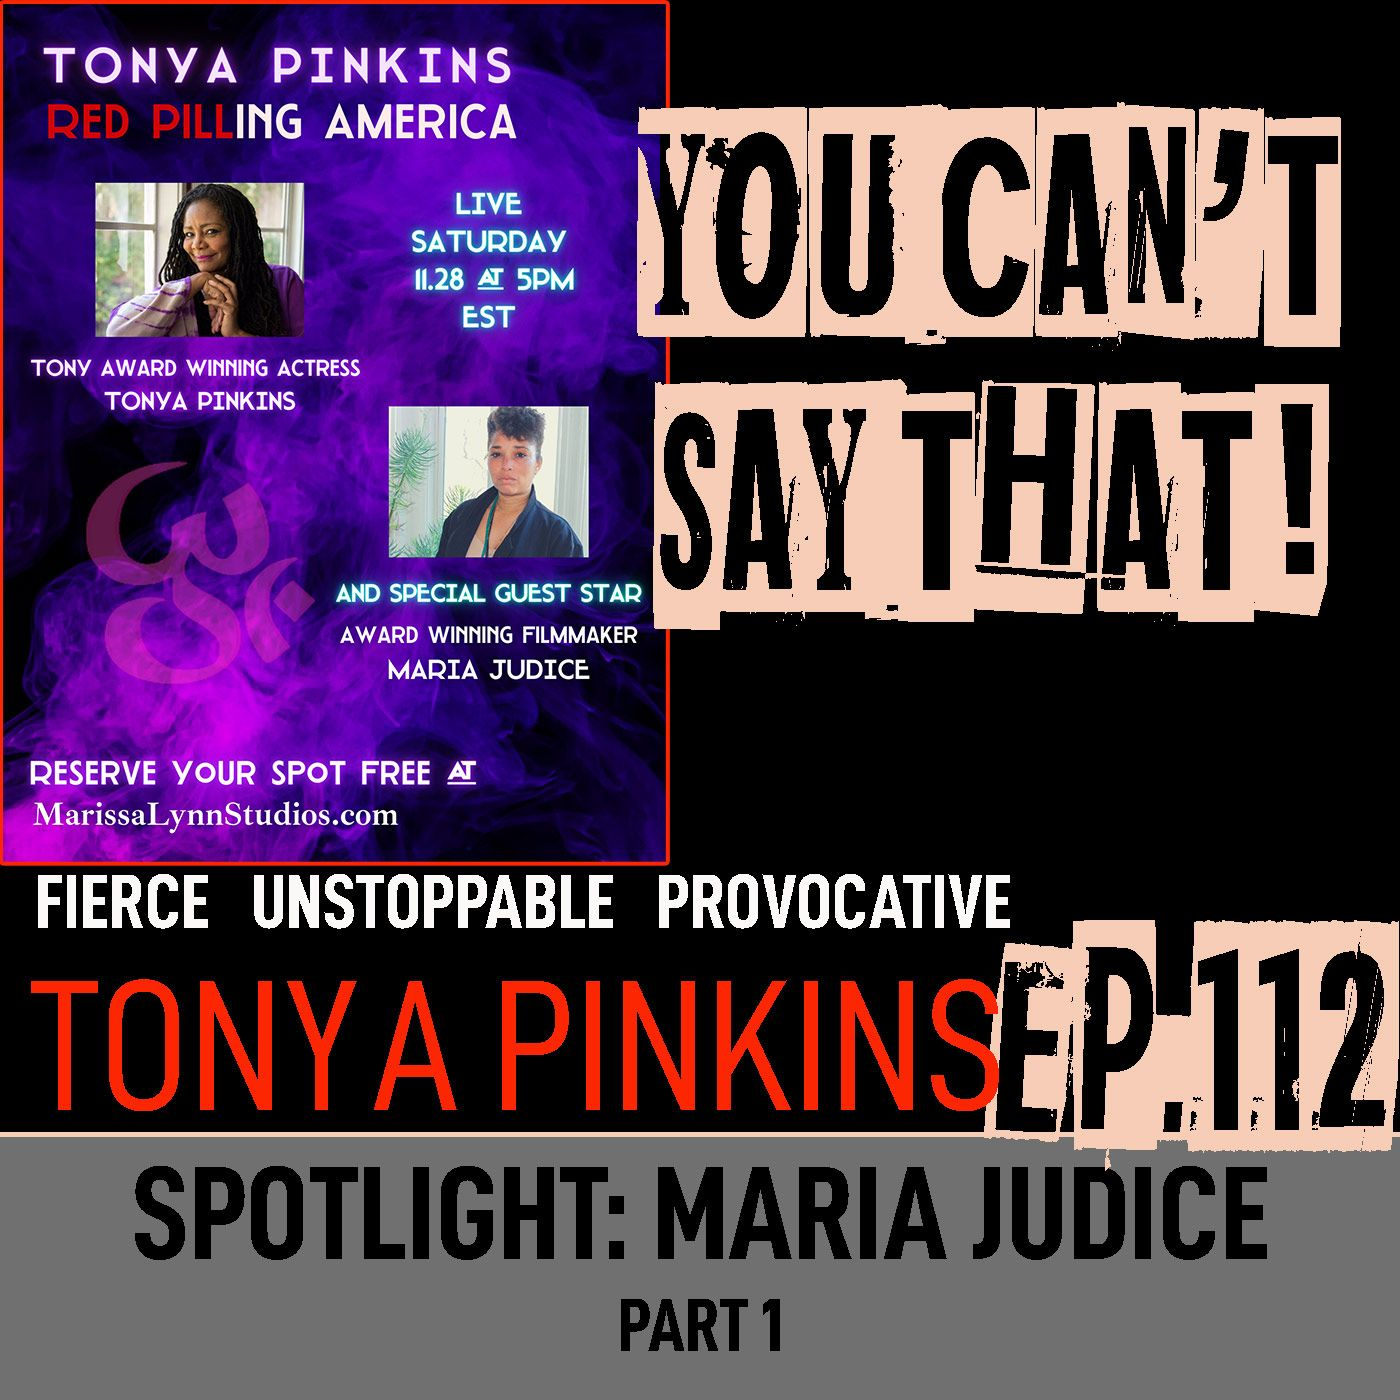 Ep112 - SPOTLIGHT: Red Pilling America with with Maria Judice (Part 1)